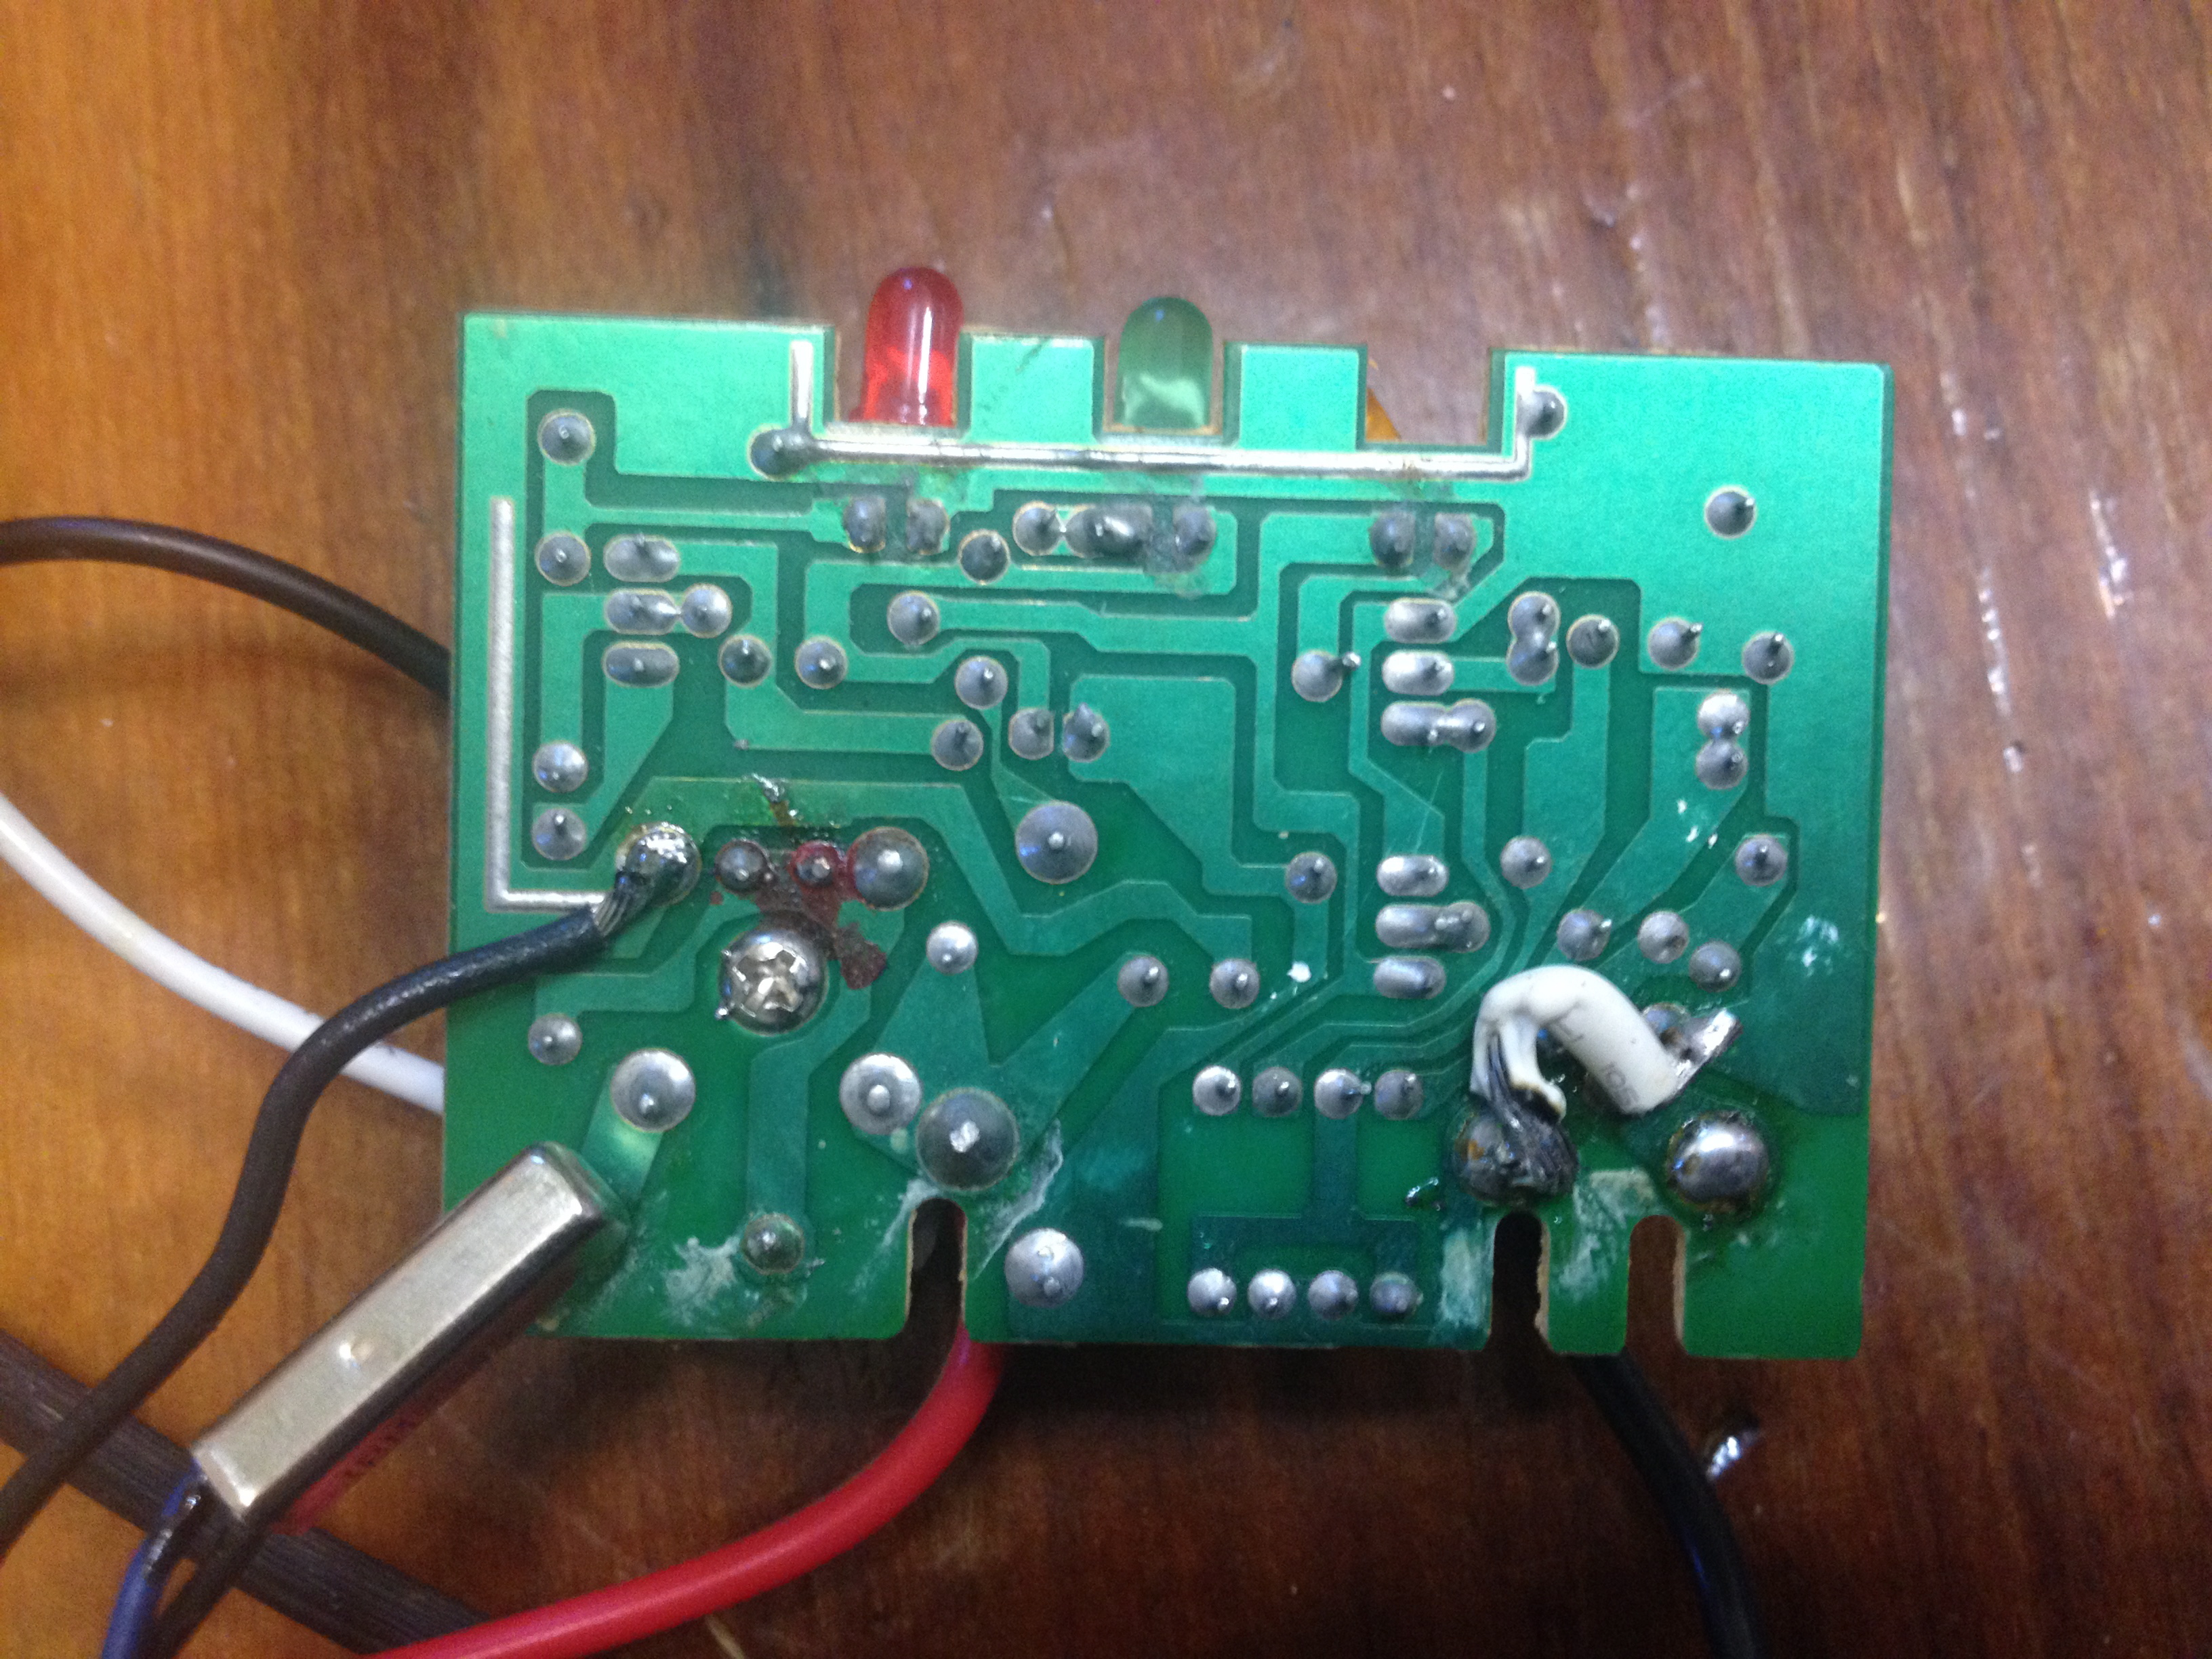 Picture of The Circuit Board